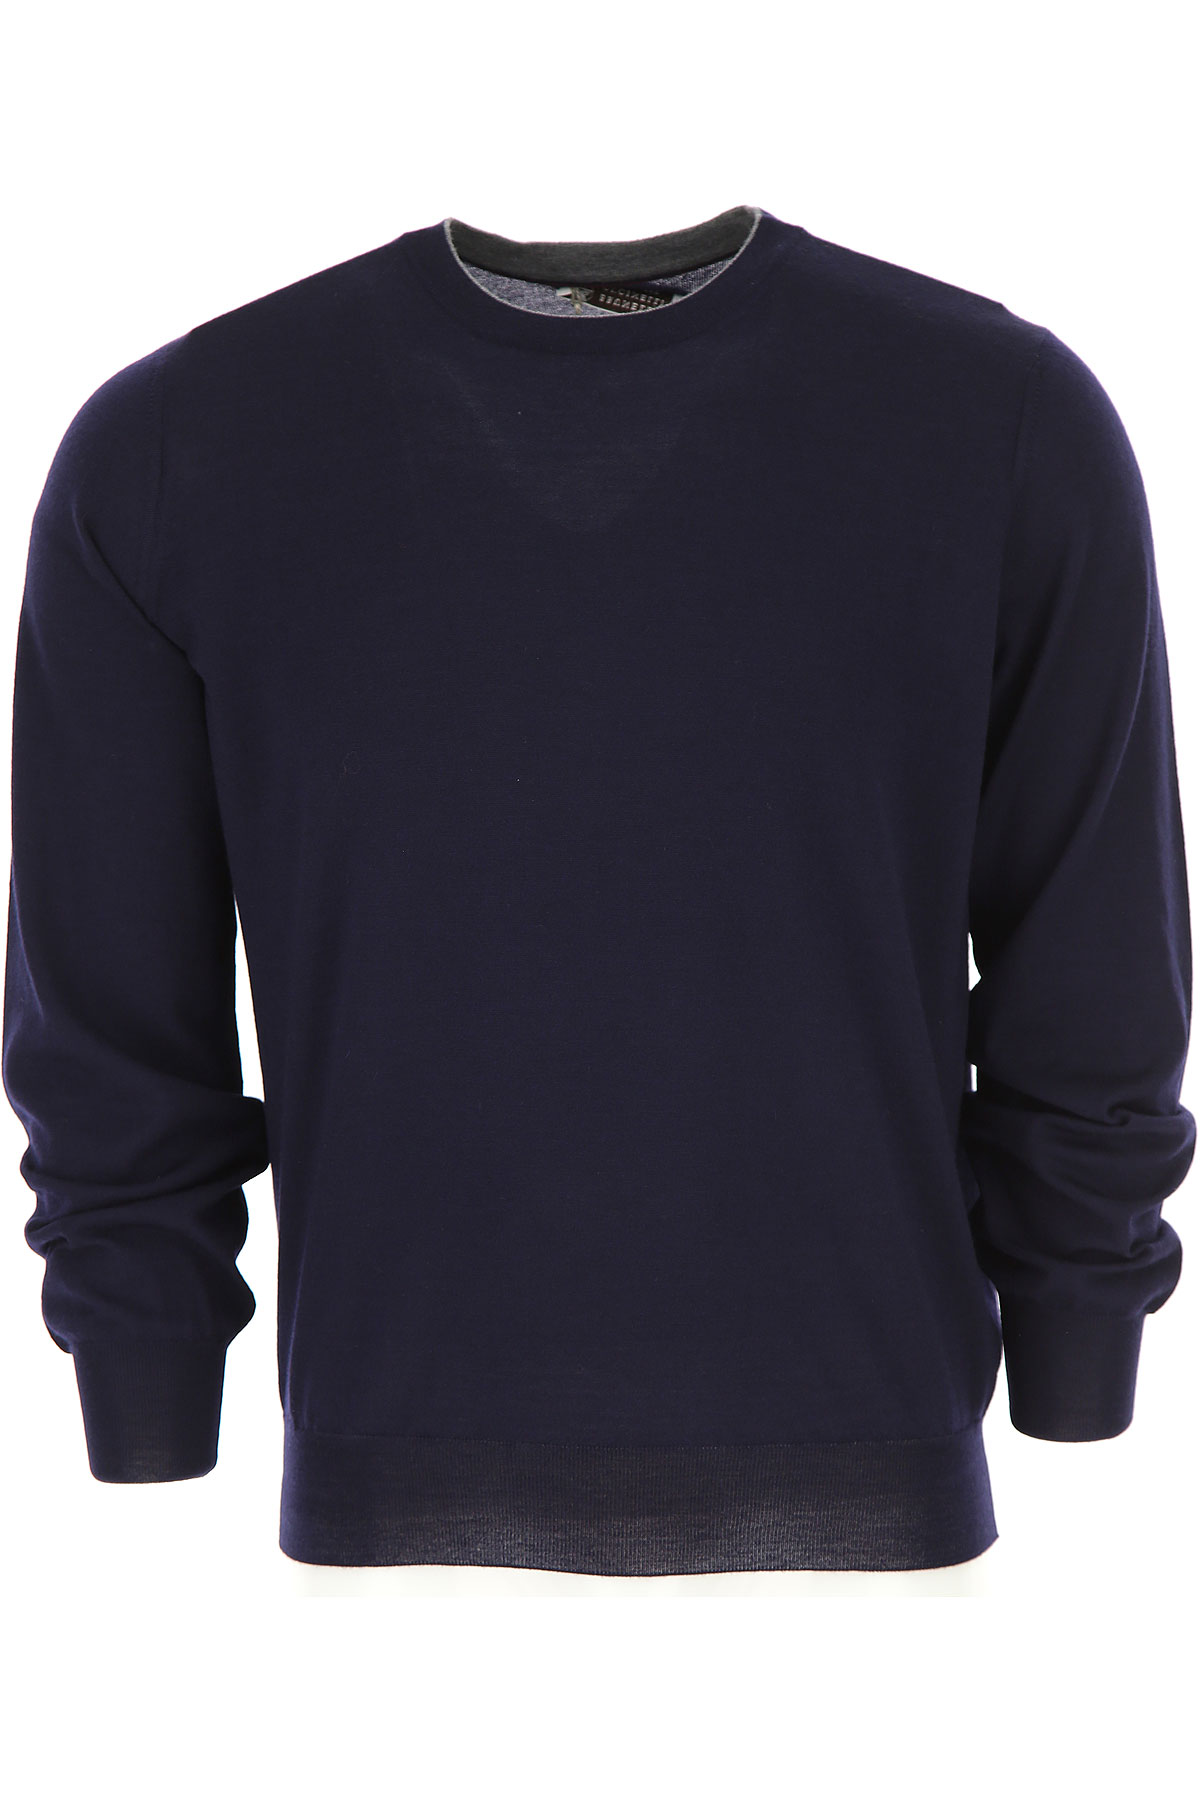 Brunello Cucinelli Sweater for Men Jumper, Blue Navy, Virgin wool, 2017, L M S XL XXL USA-474879